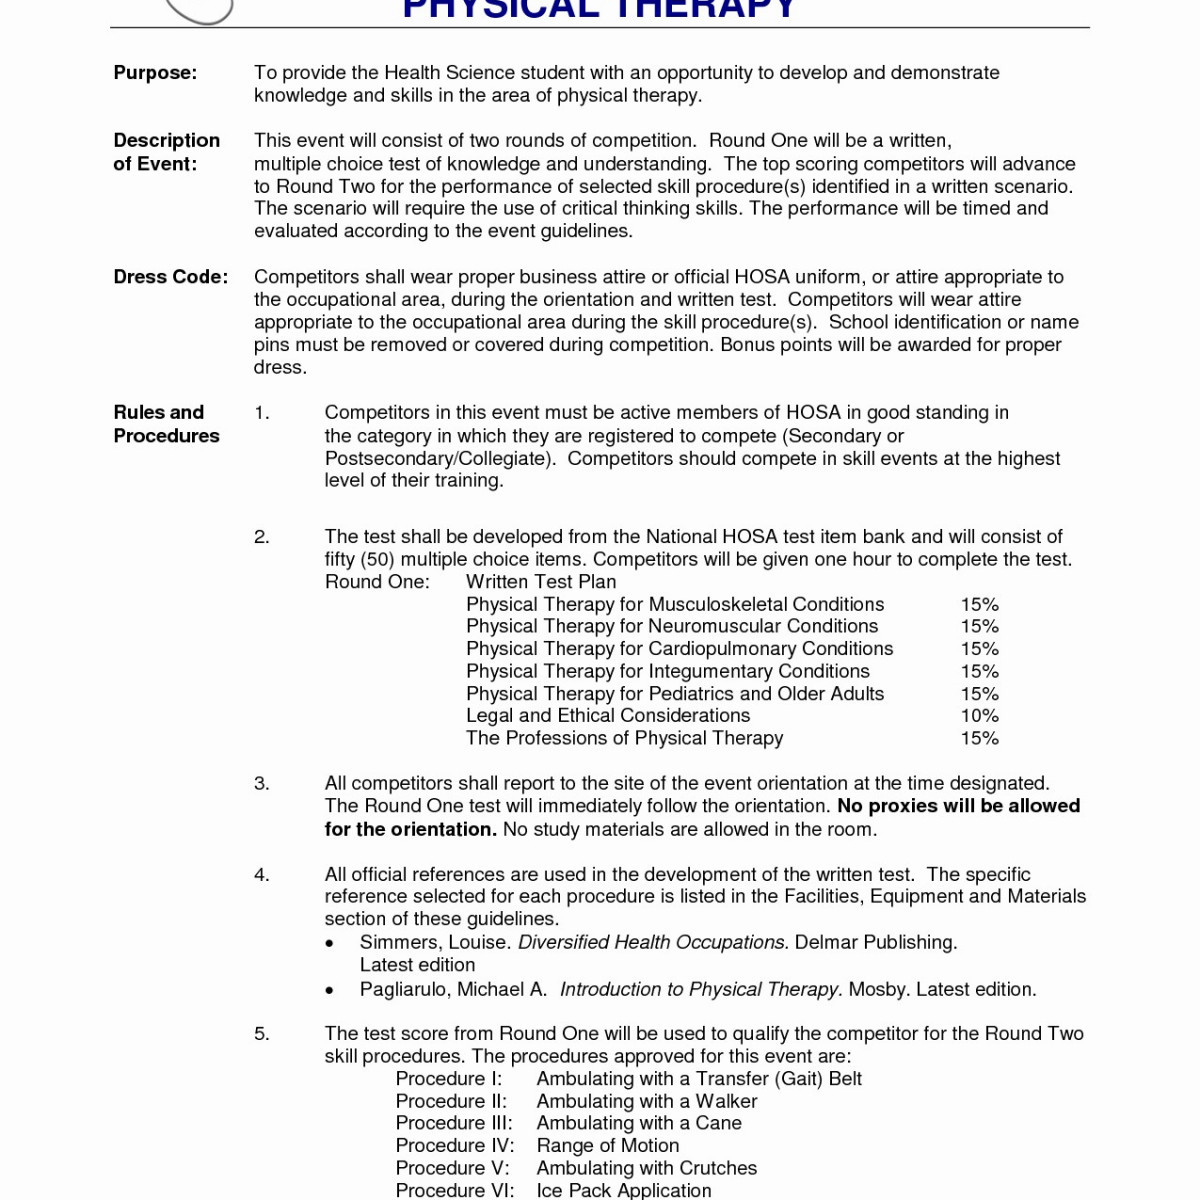 physical therapy resume template example-Resume Examples for Physical therapist at Resume Sample Ideas from Sample Physical Therapy Resume source cheapjordanretros 5-e